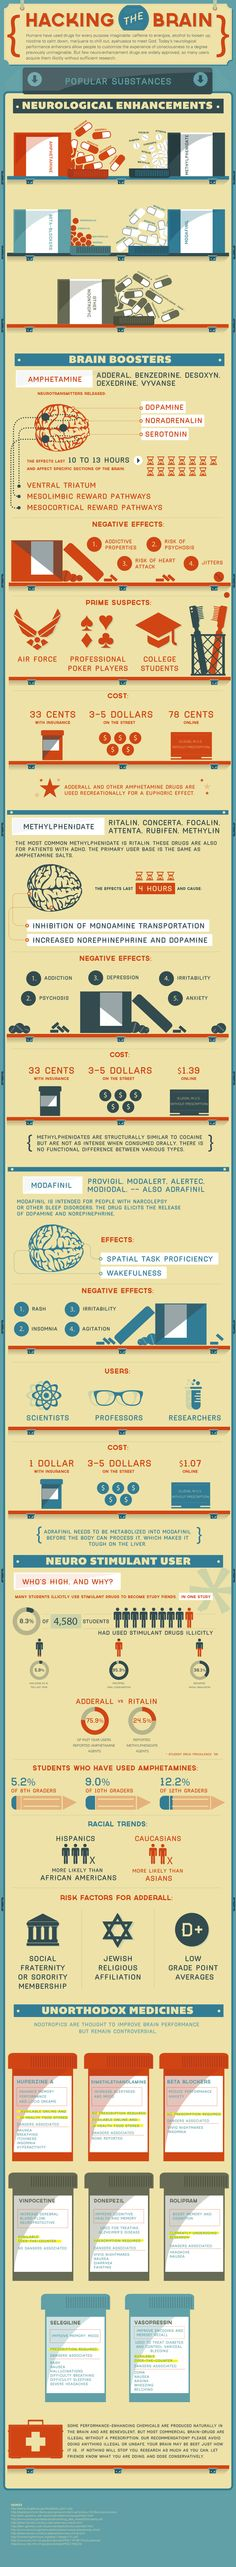 This infographic details the most commonly used neurological enhancements and the user demographics at risk for abuse.